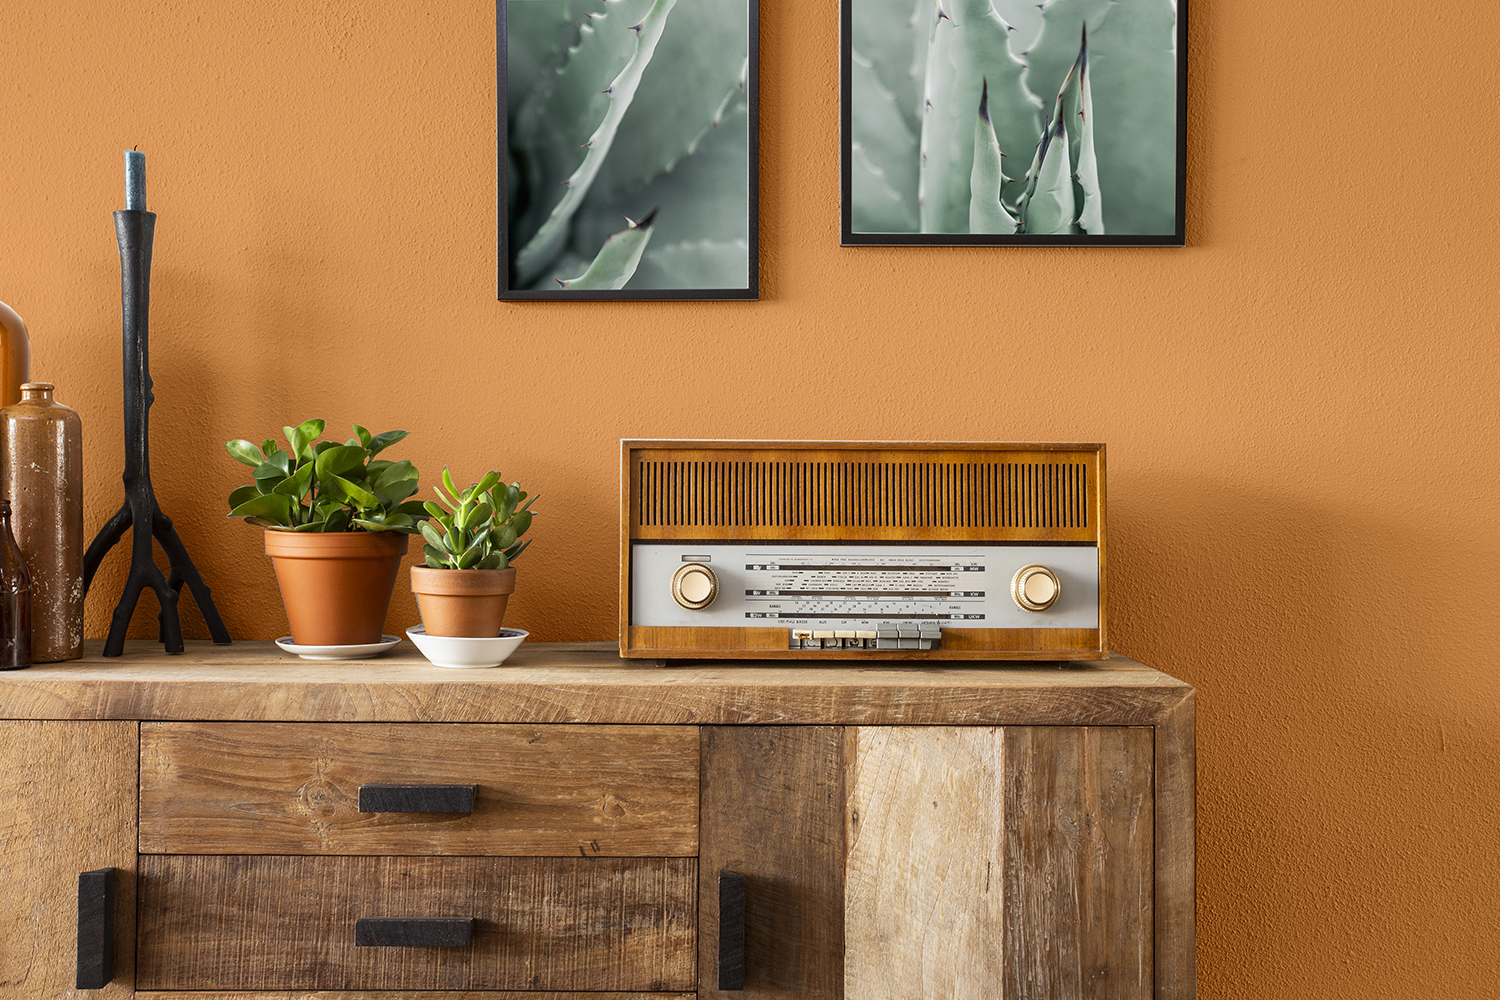 Retro living room design with cabinet and radio along with green plants and blank paintings, white wall